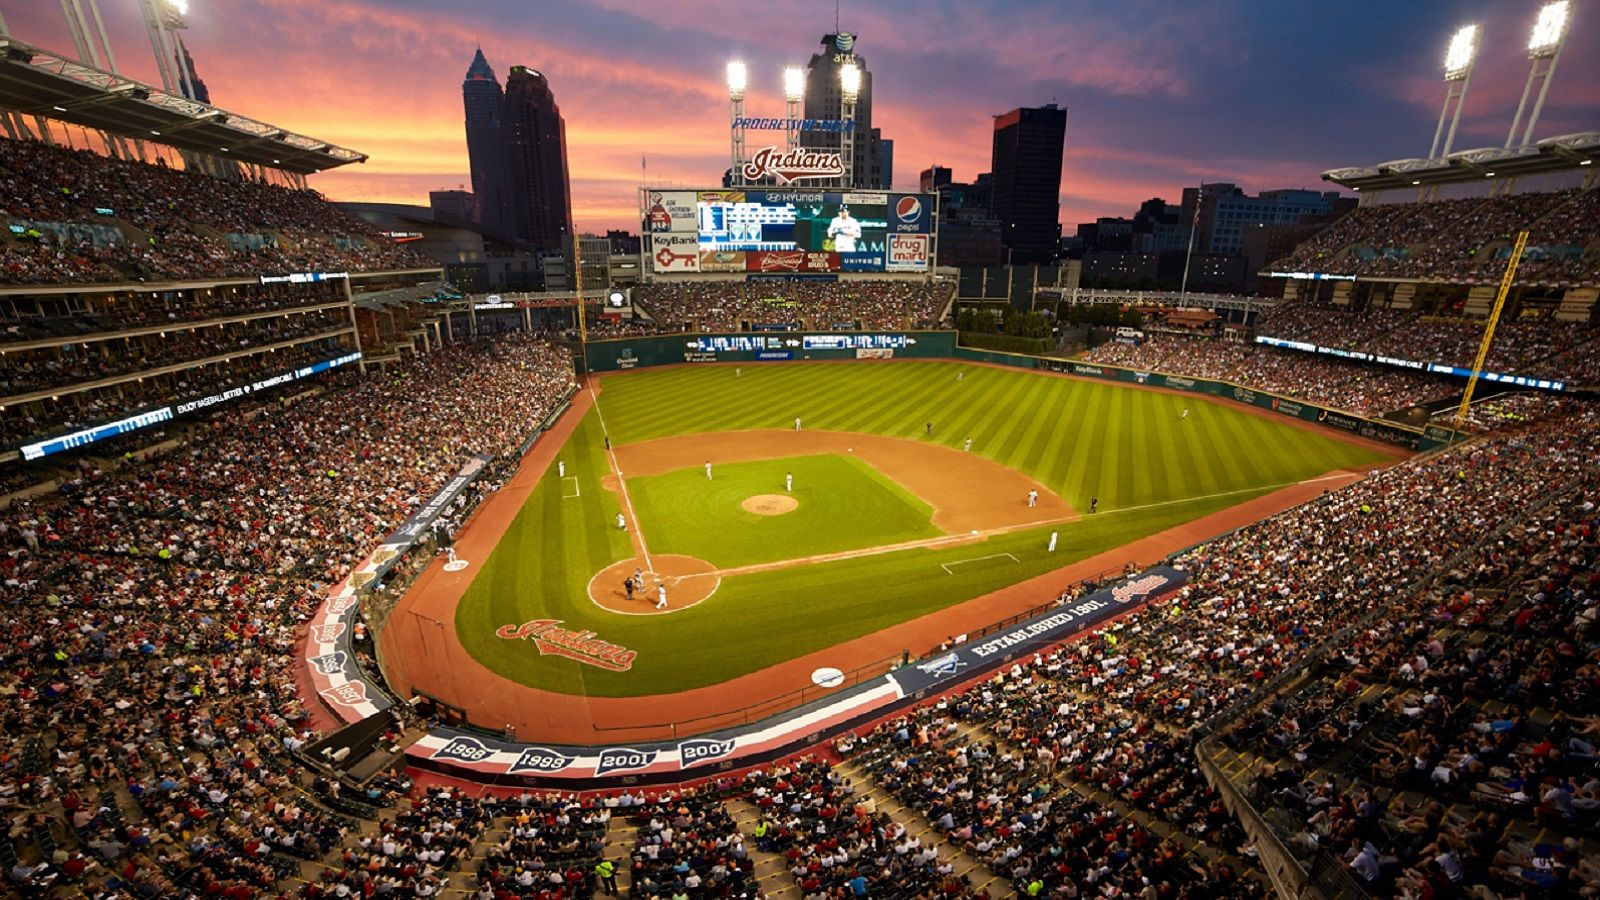 Being A Fan Of An Underdog Sports Team Baseball Stadium Lawn Care Tips Field